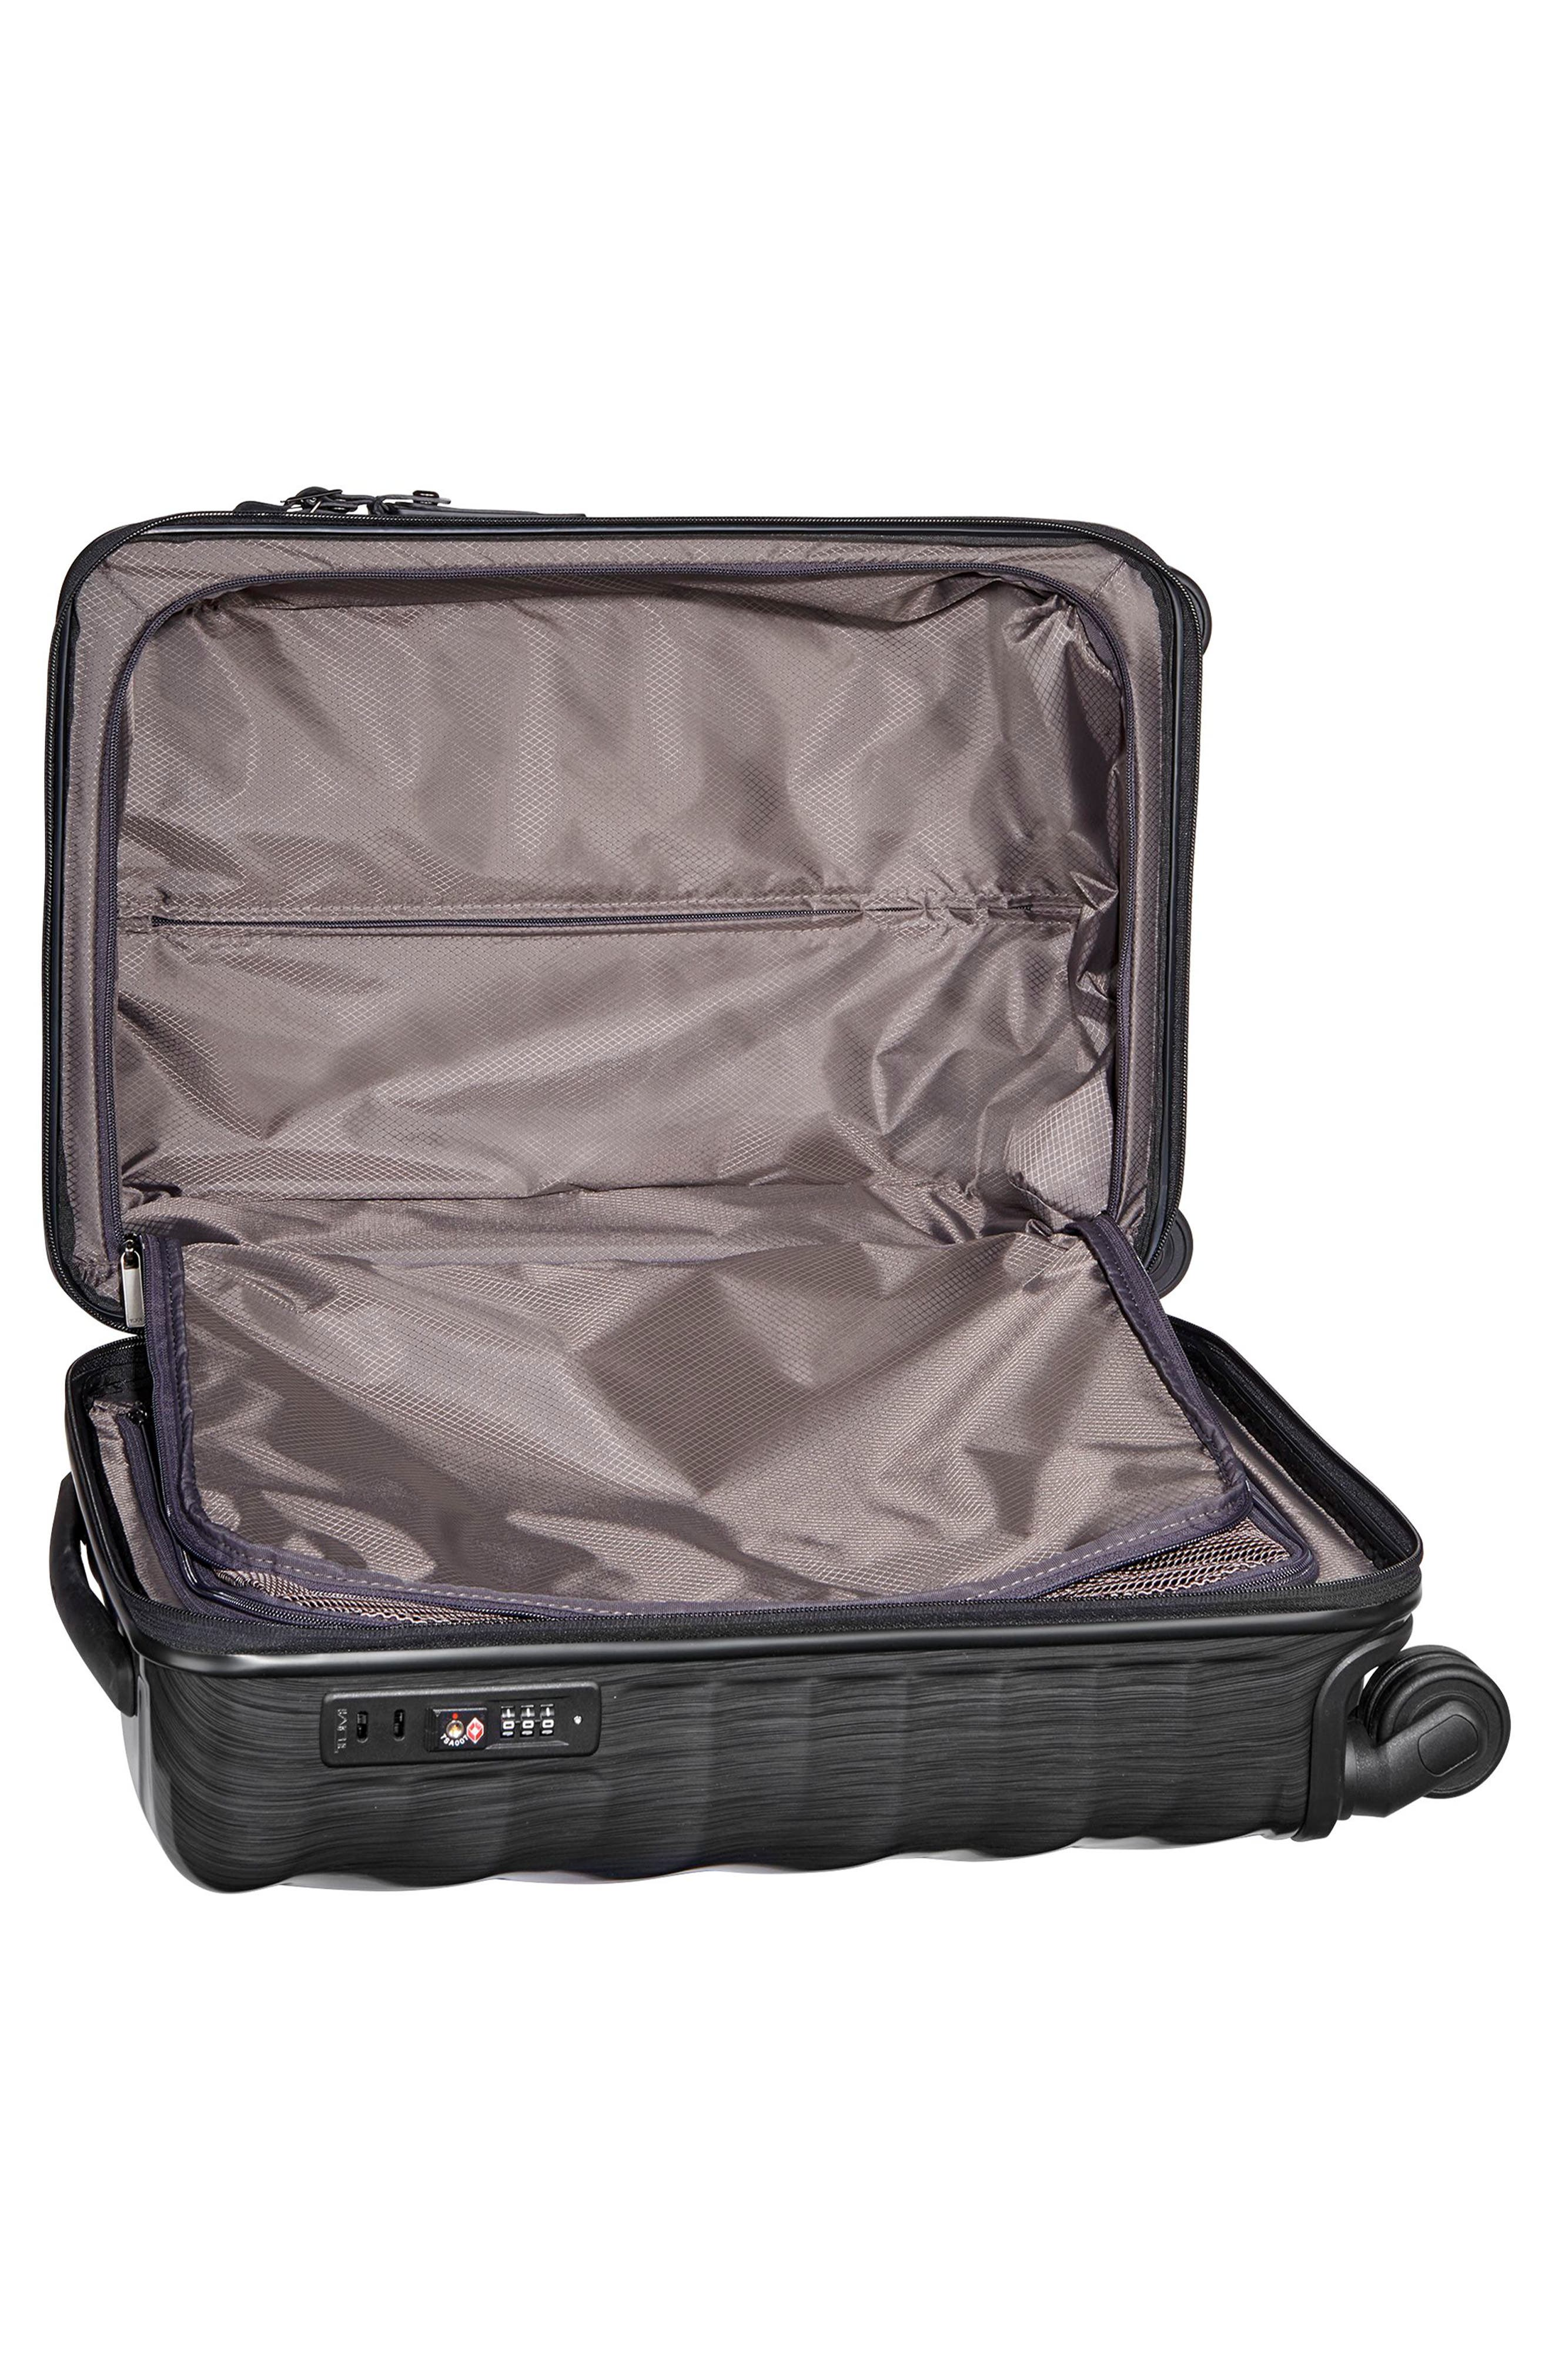 19 Degree 21-Inch International Wheeled Carry-On,                             Alternate thumbnail 5, color,                             001